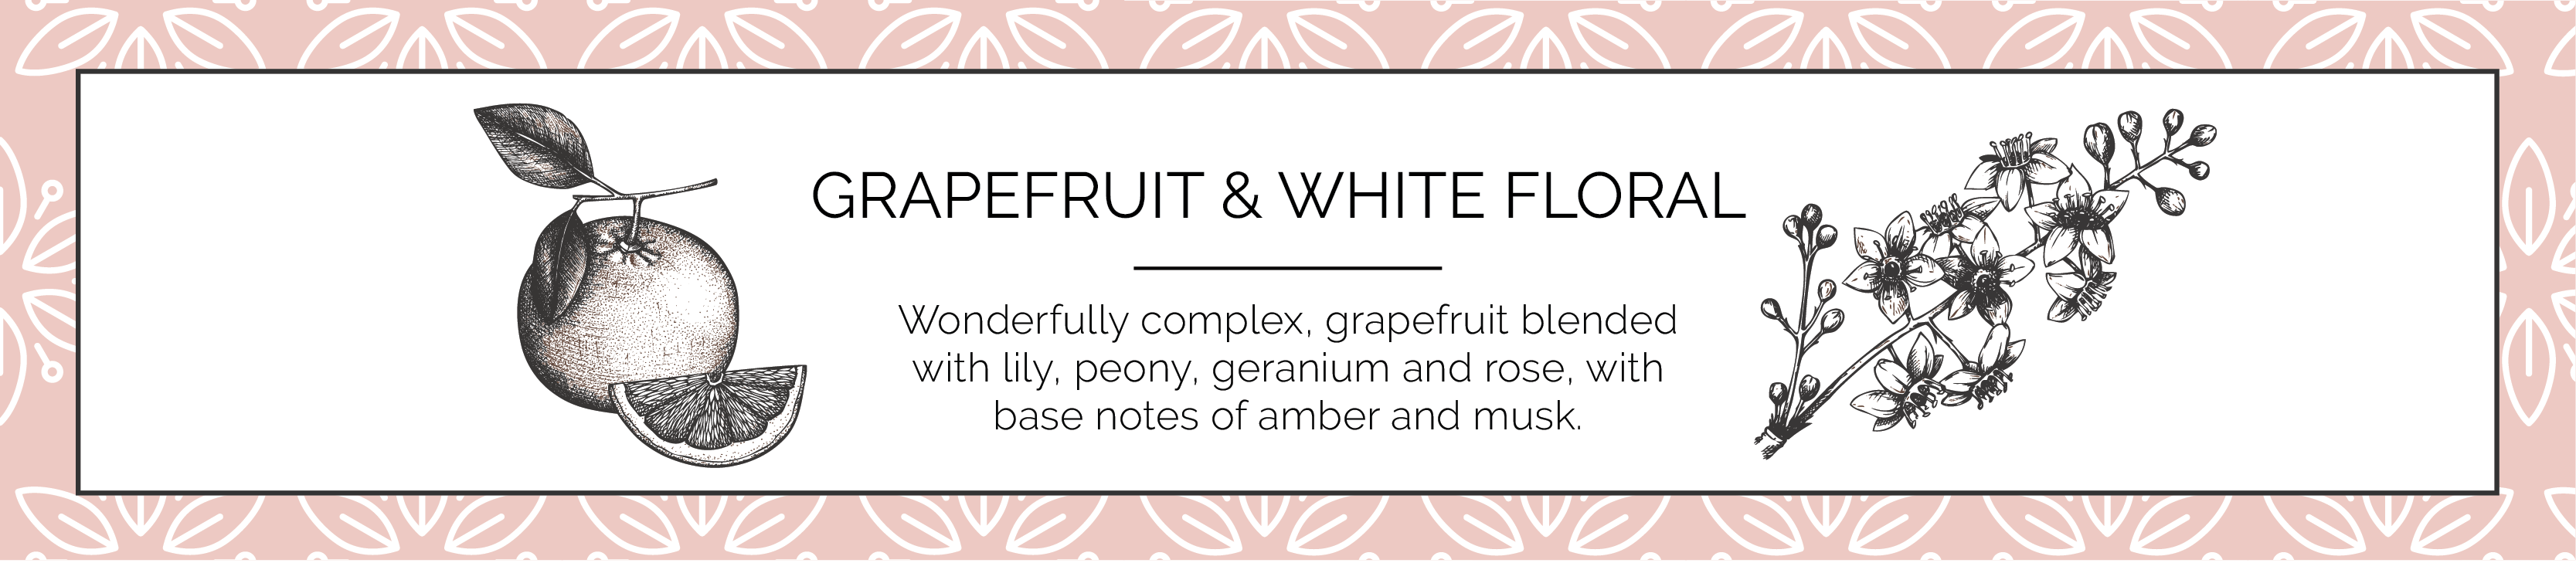 Grapefruit and White Floral Candles Fragrance